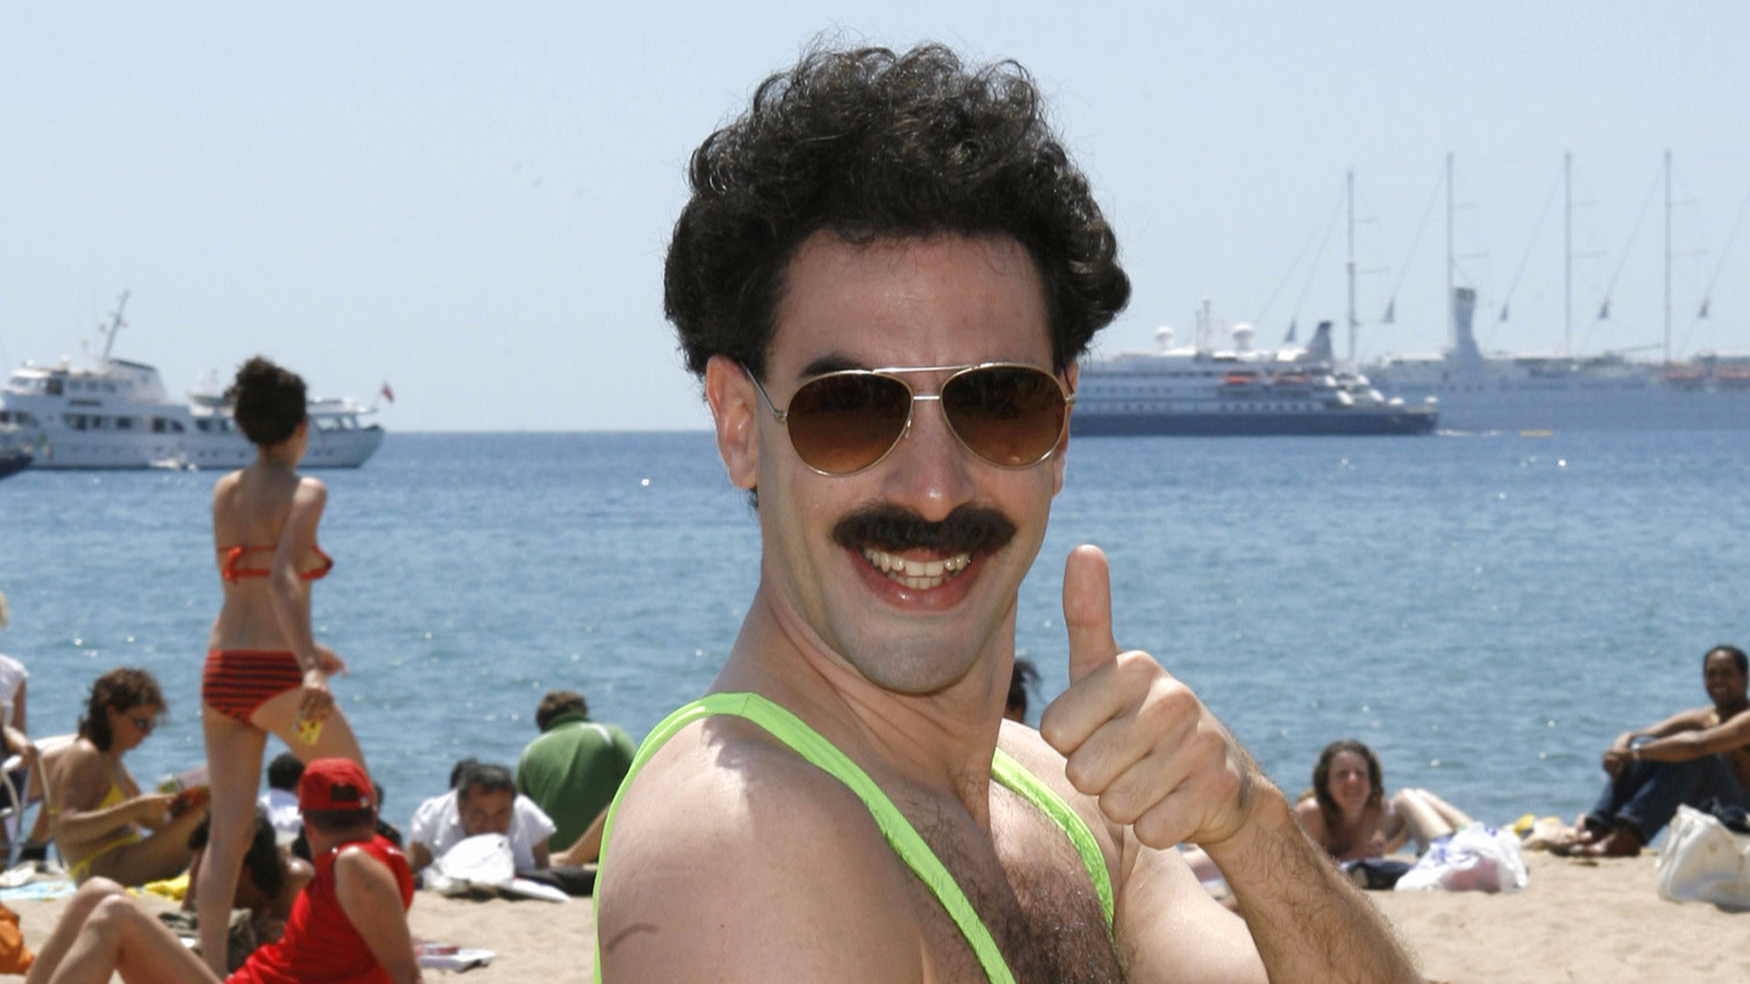 Tourists Arrested In Kazakhstan Capital For Wearing Borat 'Mankinis' In Public